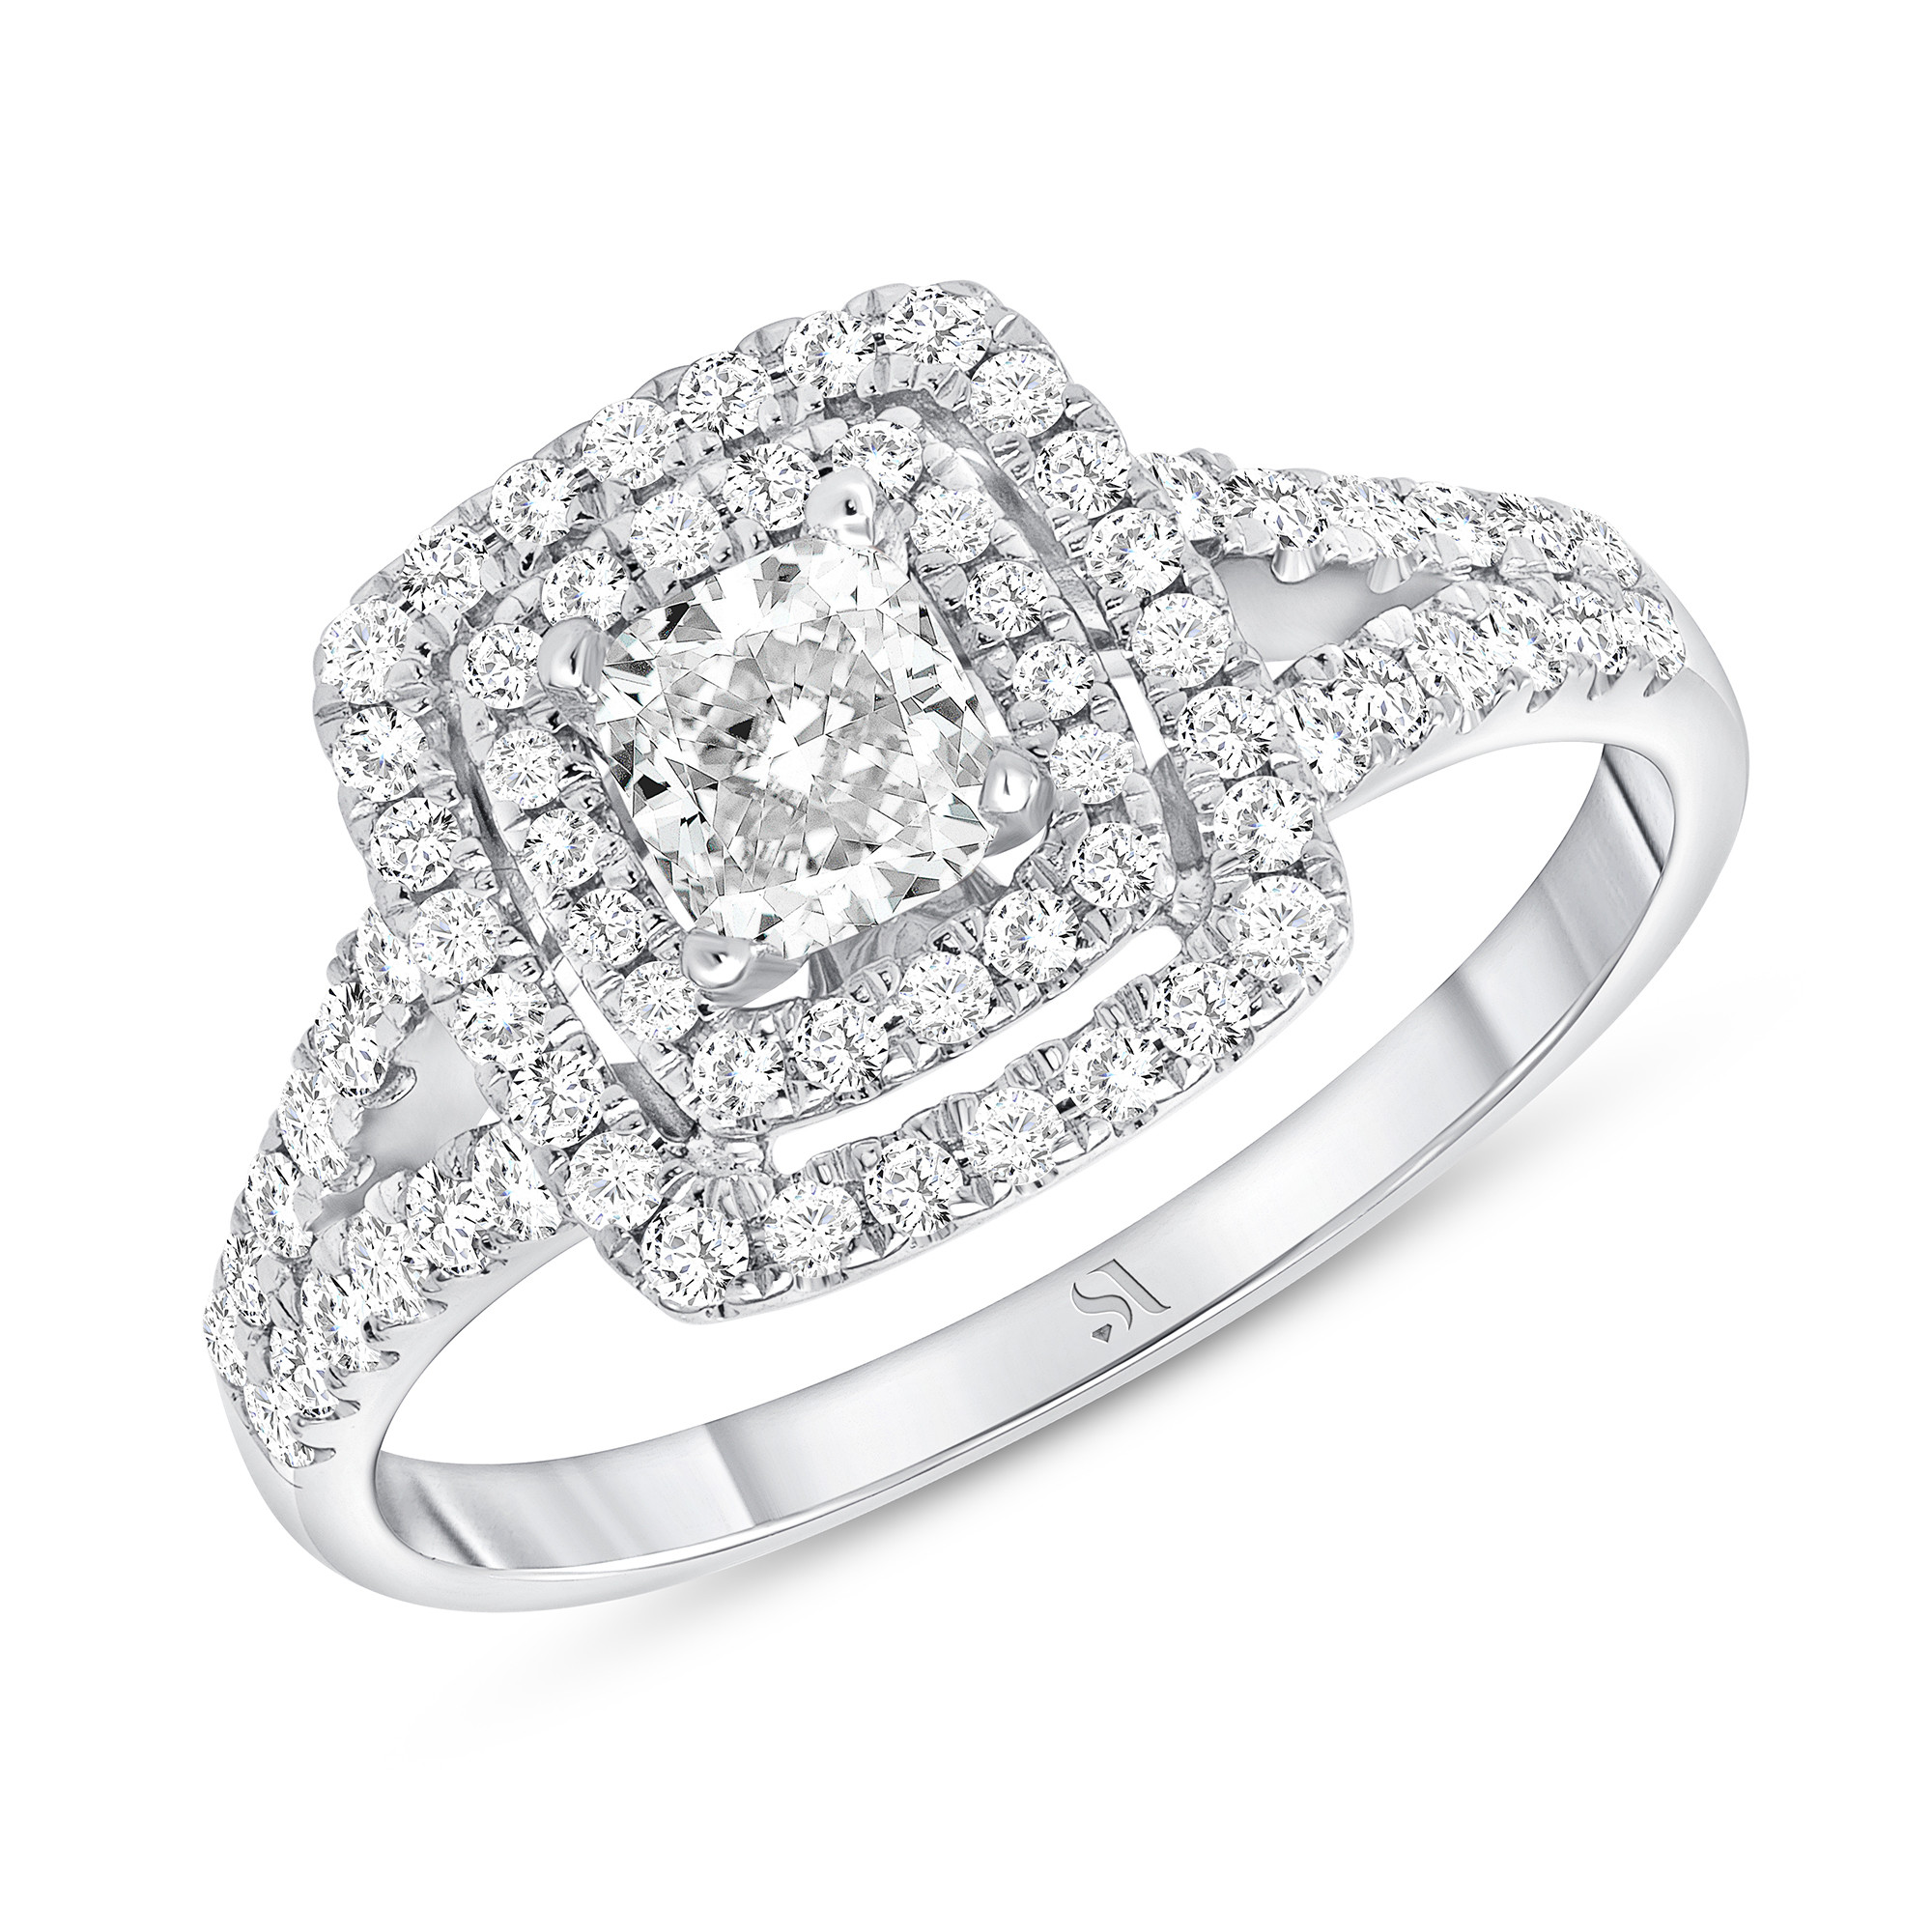 Cushion Cut Double Halo Engagement Ring | Sabrina A Inc